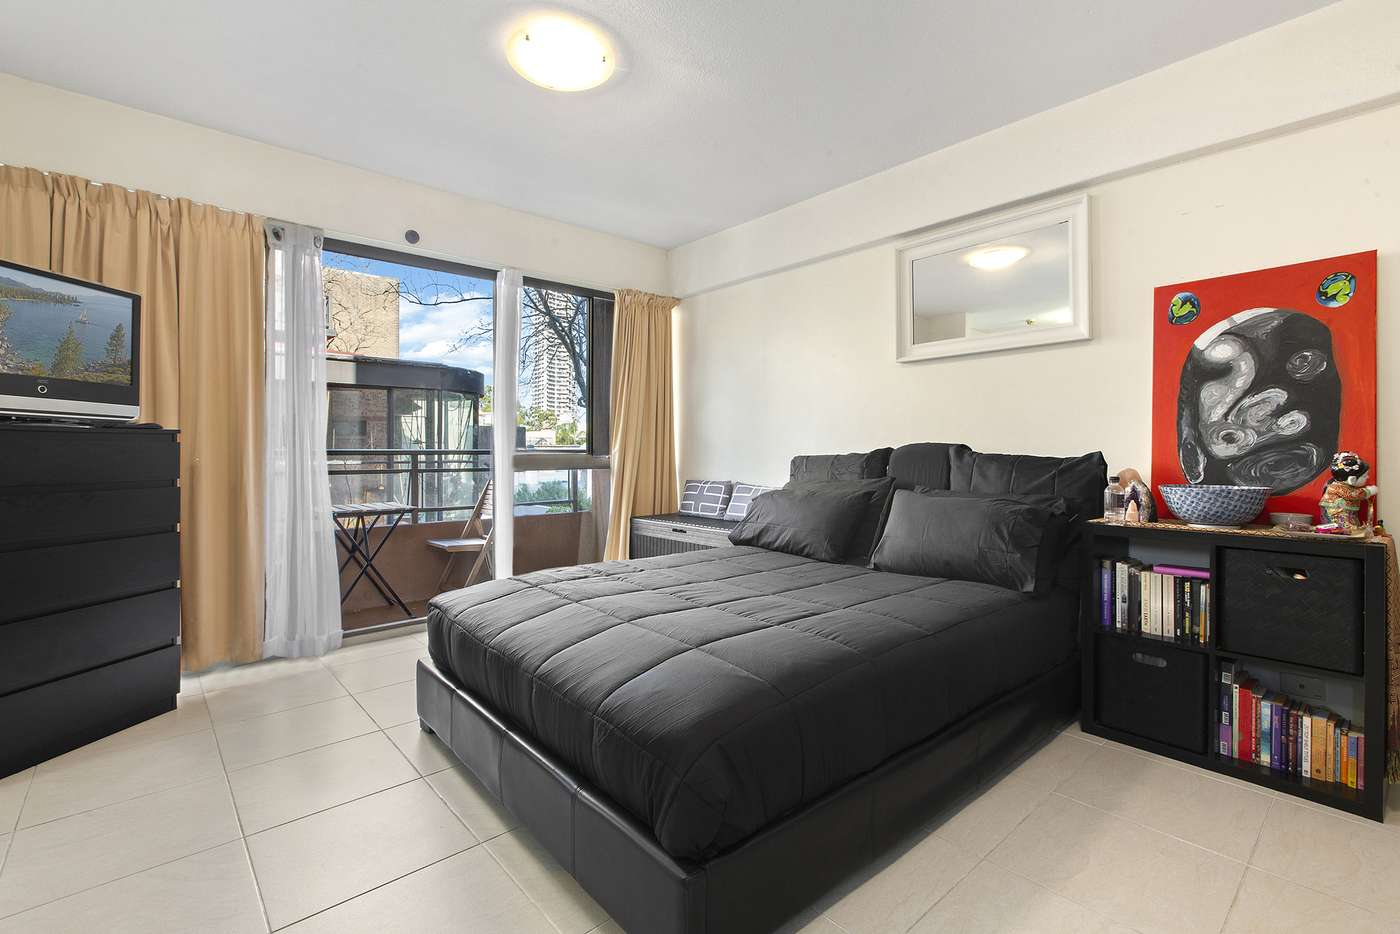 Fifth view of Homely studio listing, 104/145 Victoria Street, Potts Point NSW 2011